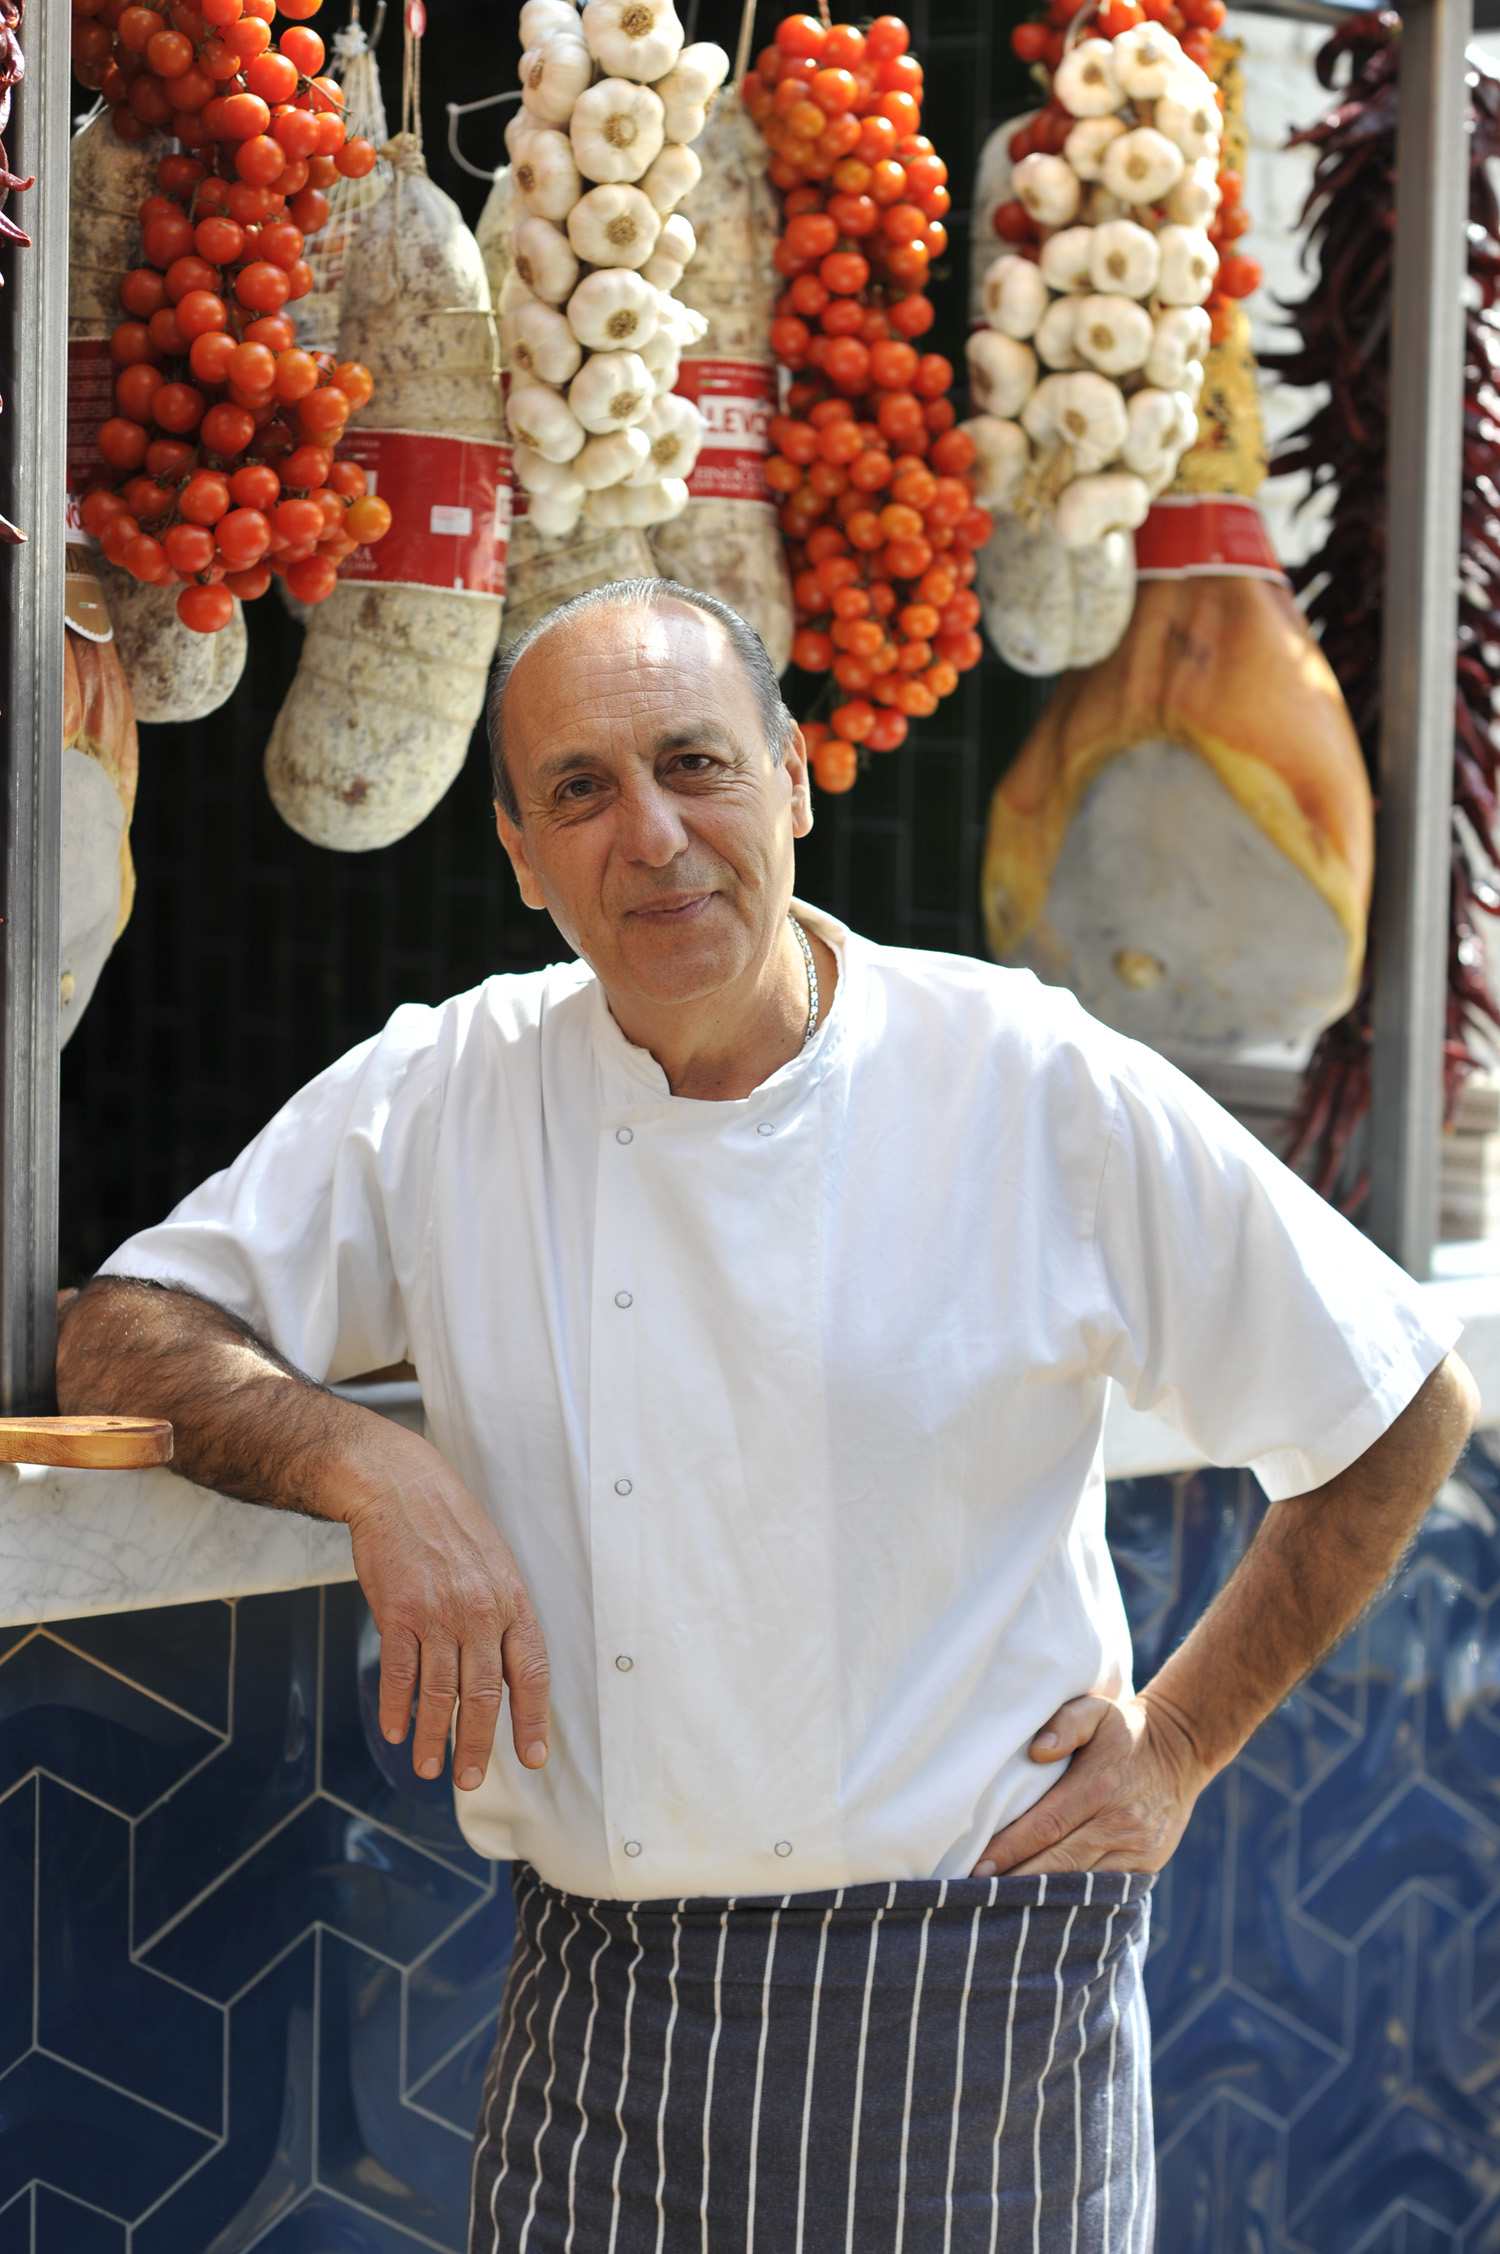 Chef and restauranter Genaro Contaldo at Jamie's Italian in Grenwich